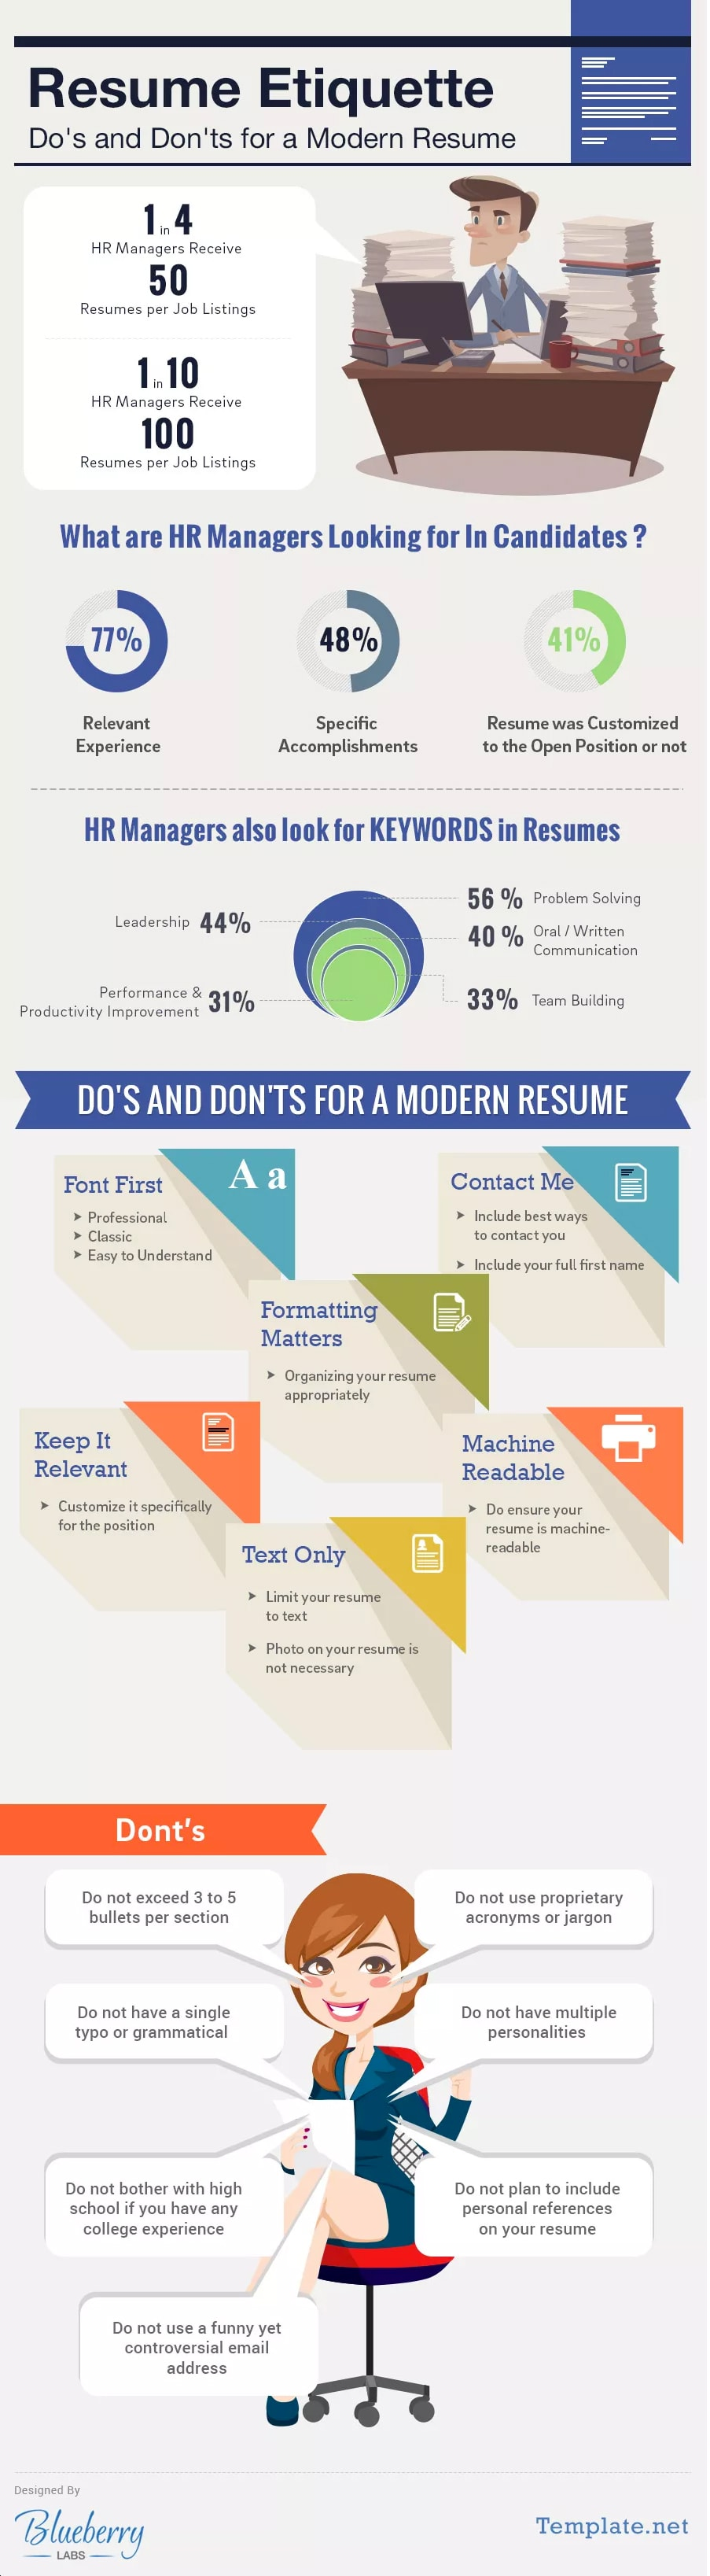 resume3 - Tips For Building A Resume